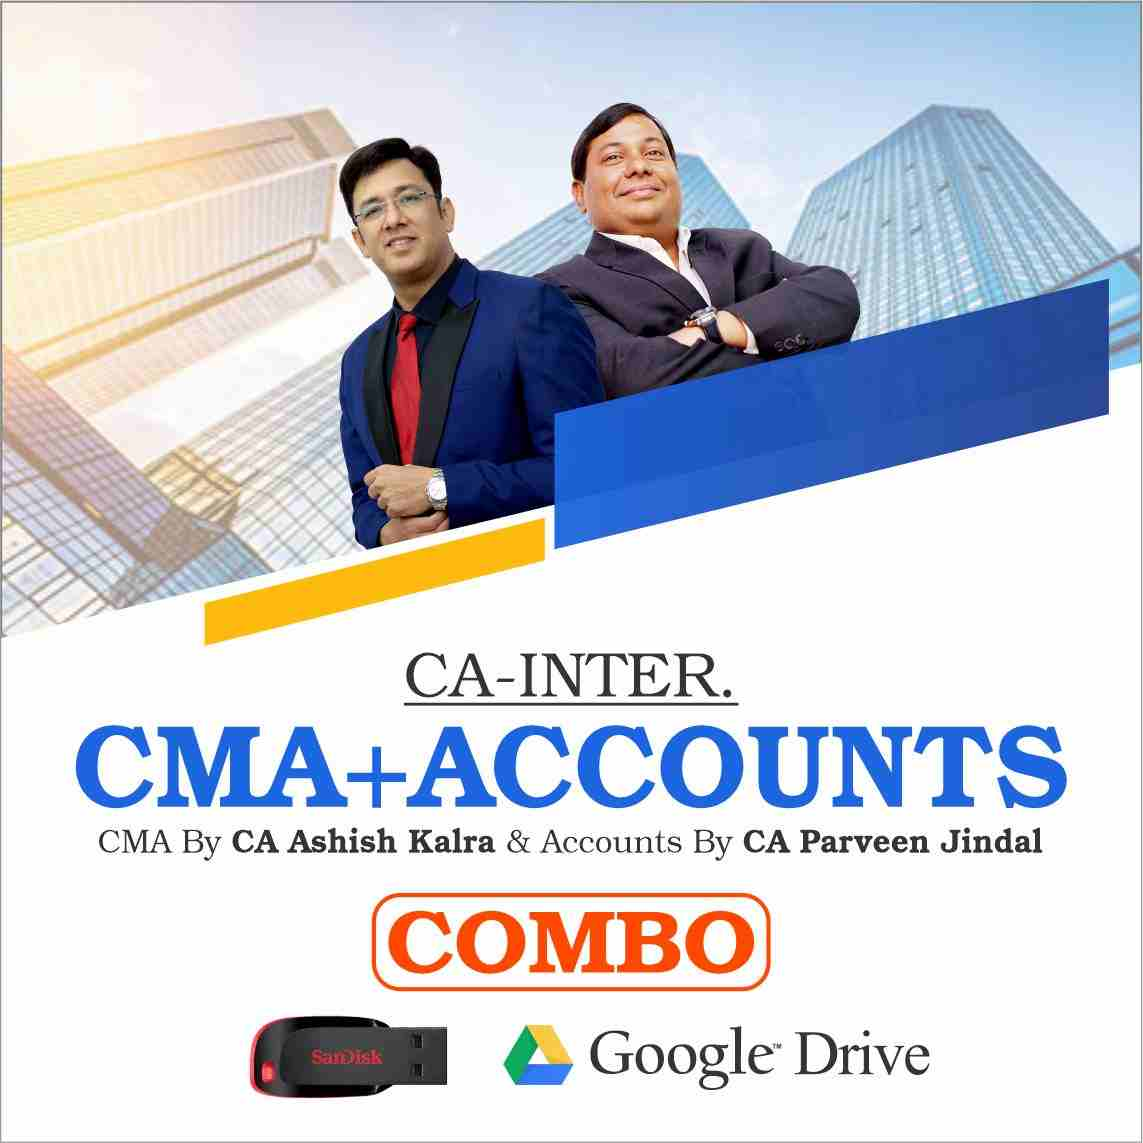 Combo (CMA + Accounts)